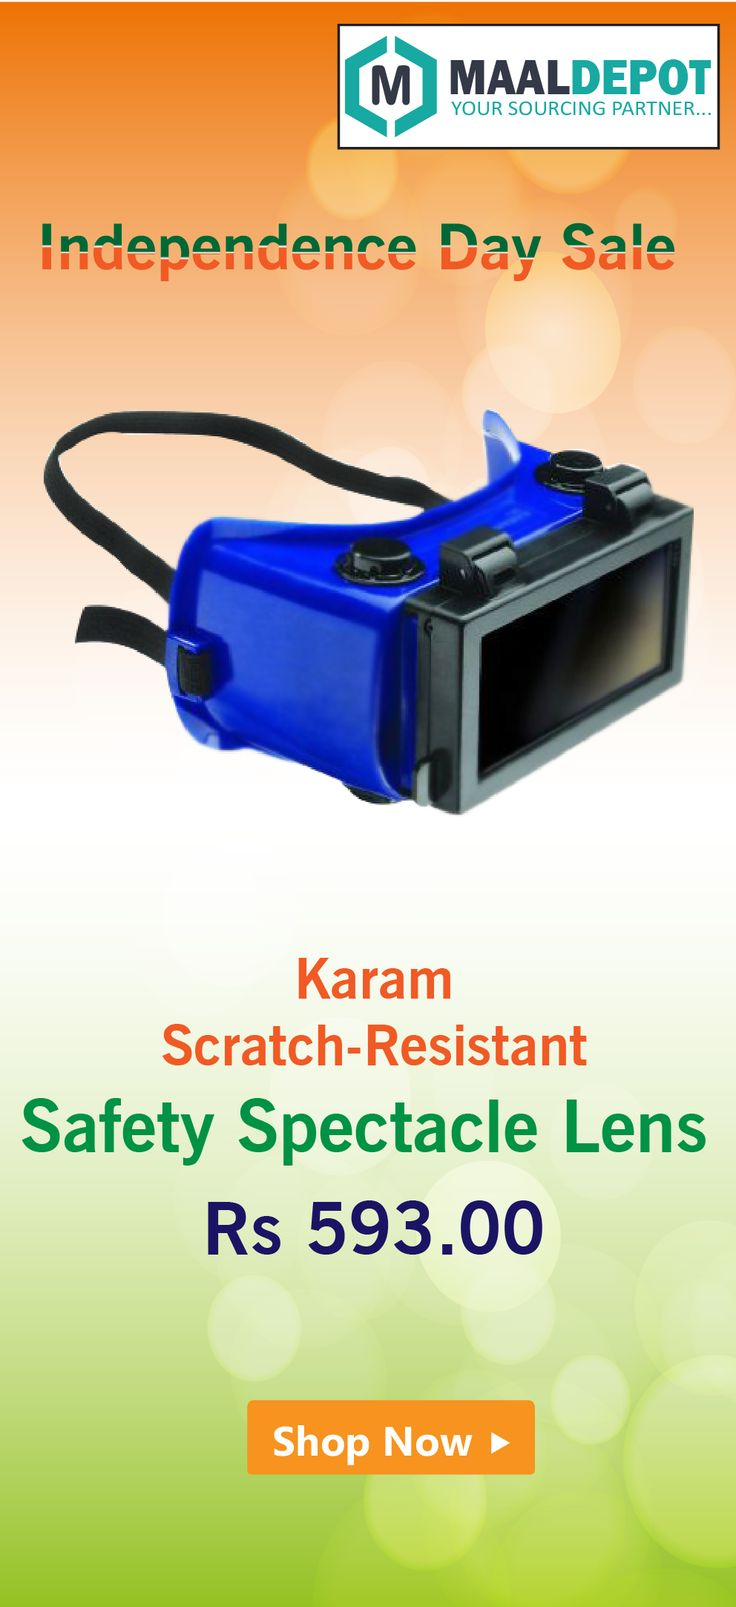 Karam ES004 Scratch Resistant Safety Spectacle with Special IR Lenses keeping in mind Rapid Development in Infrared and Welding Technology. Shop at http://bit.ly/2be4pOC for affordable prices. To place orders,call or whatsapp to 9019156789